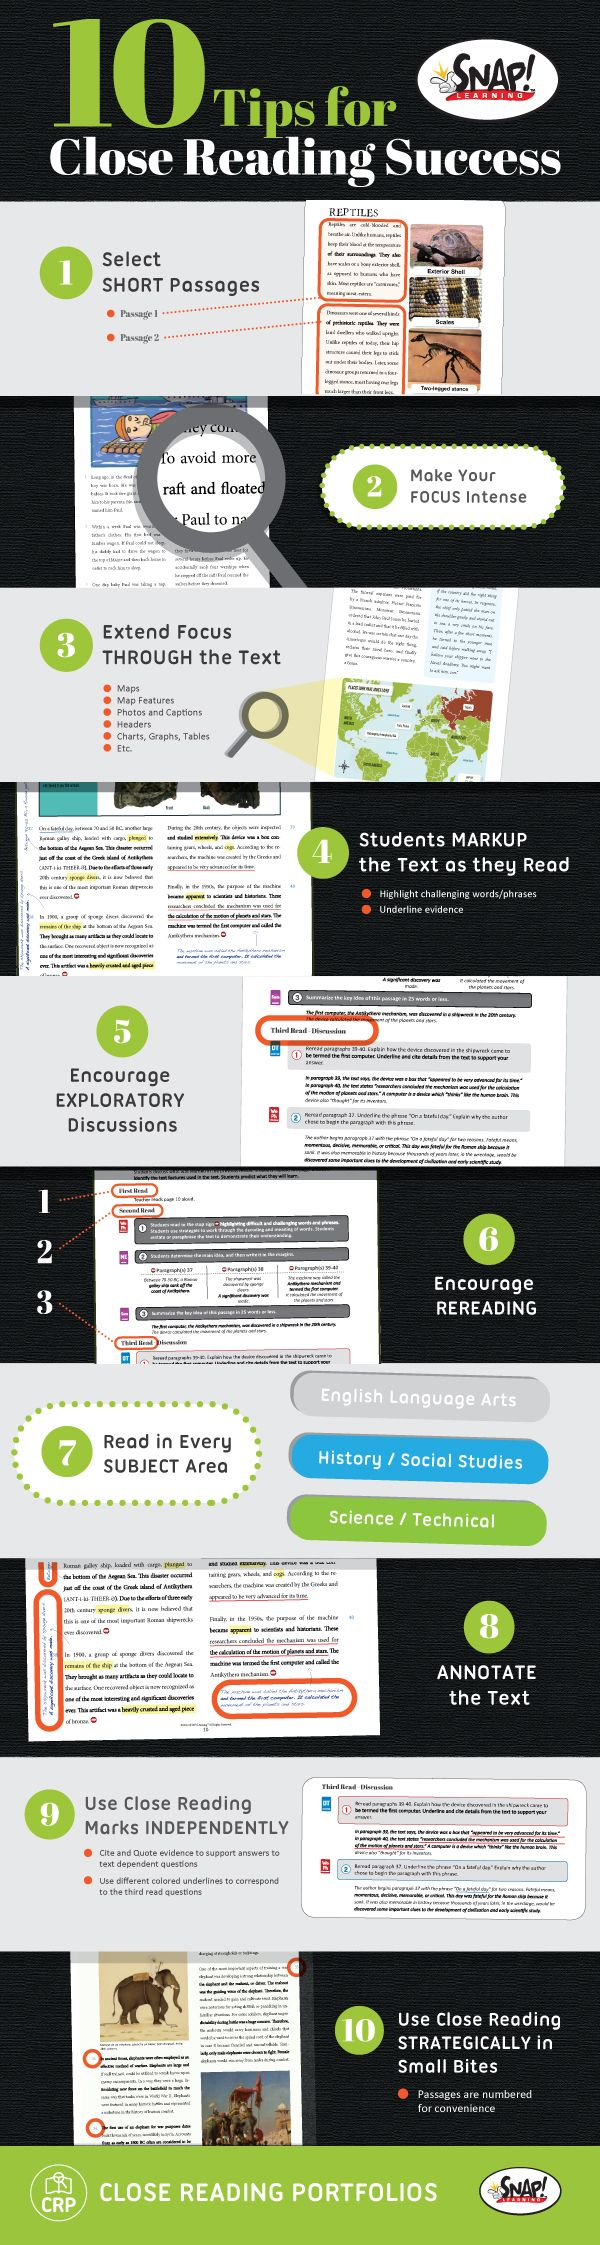 If you are looking for a way to take your student's comprehension to a whole new level in any subject area, Close Reading is just the strategy for you!